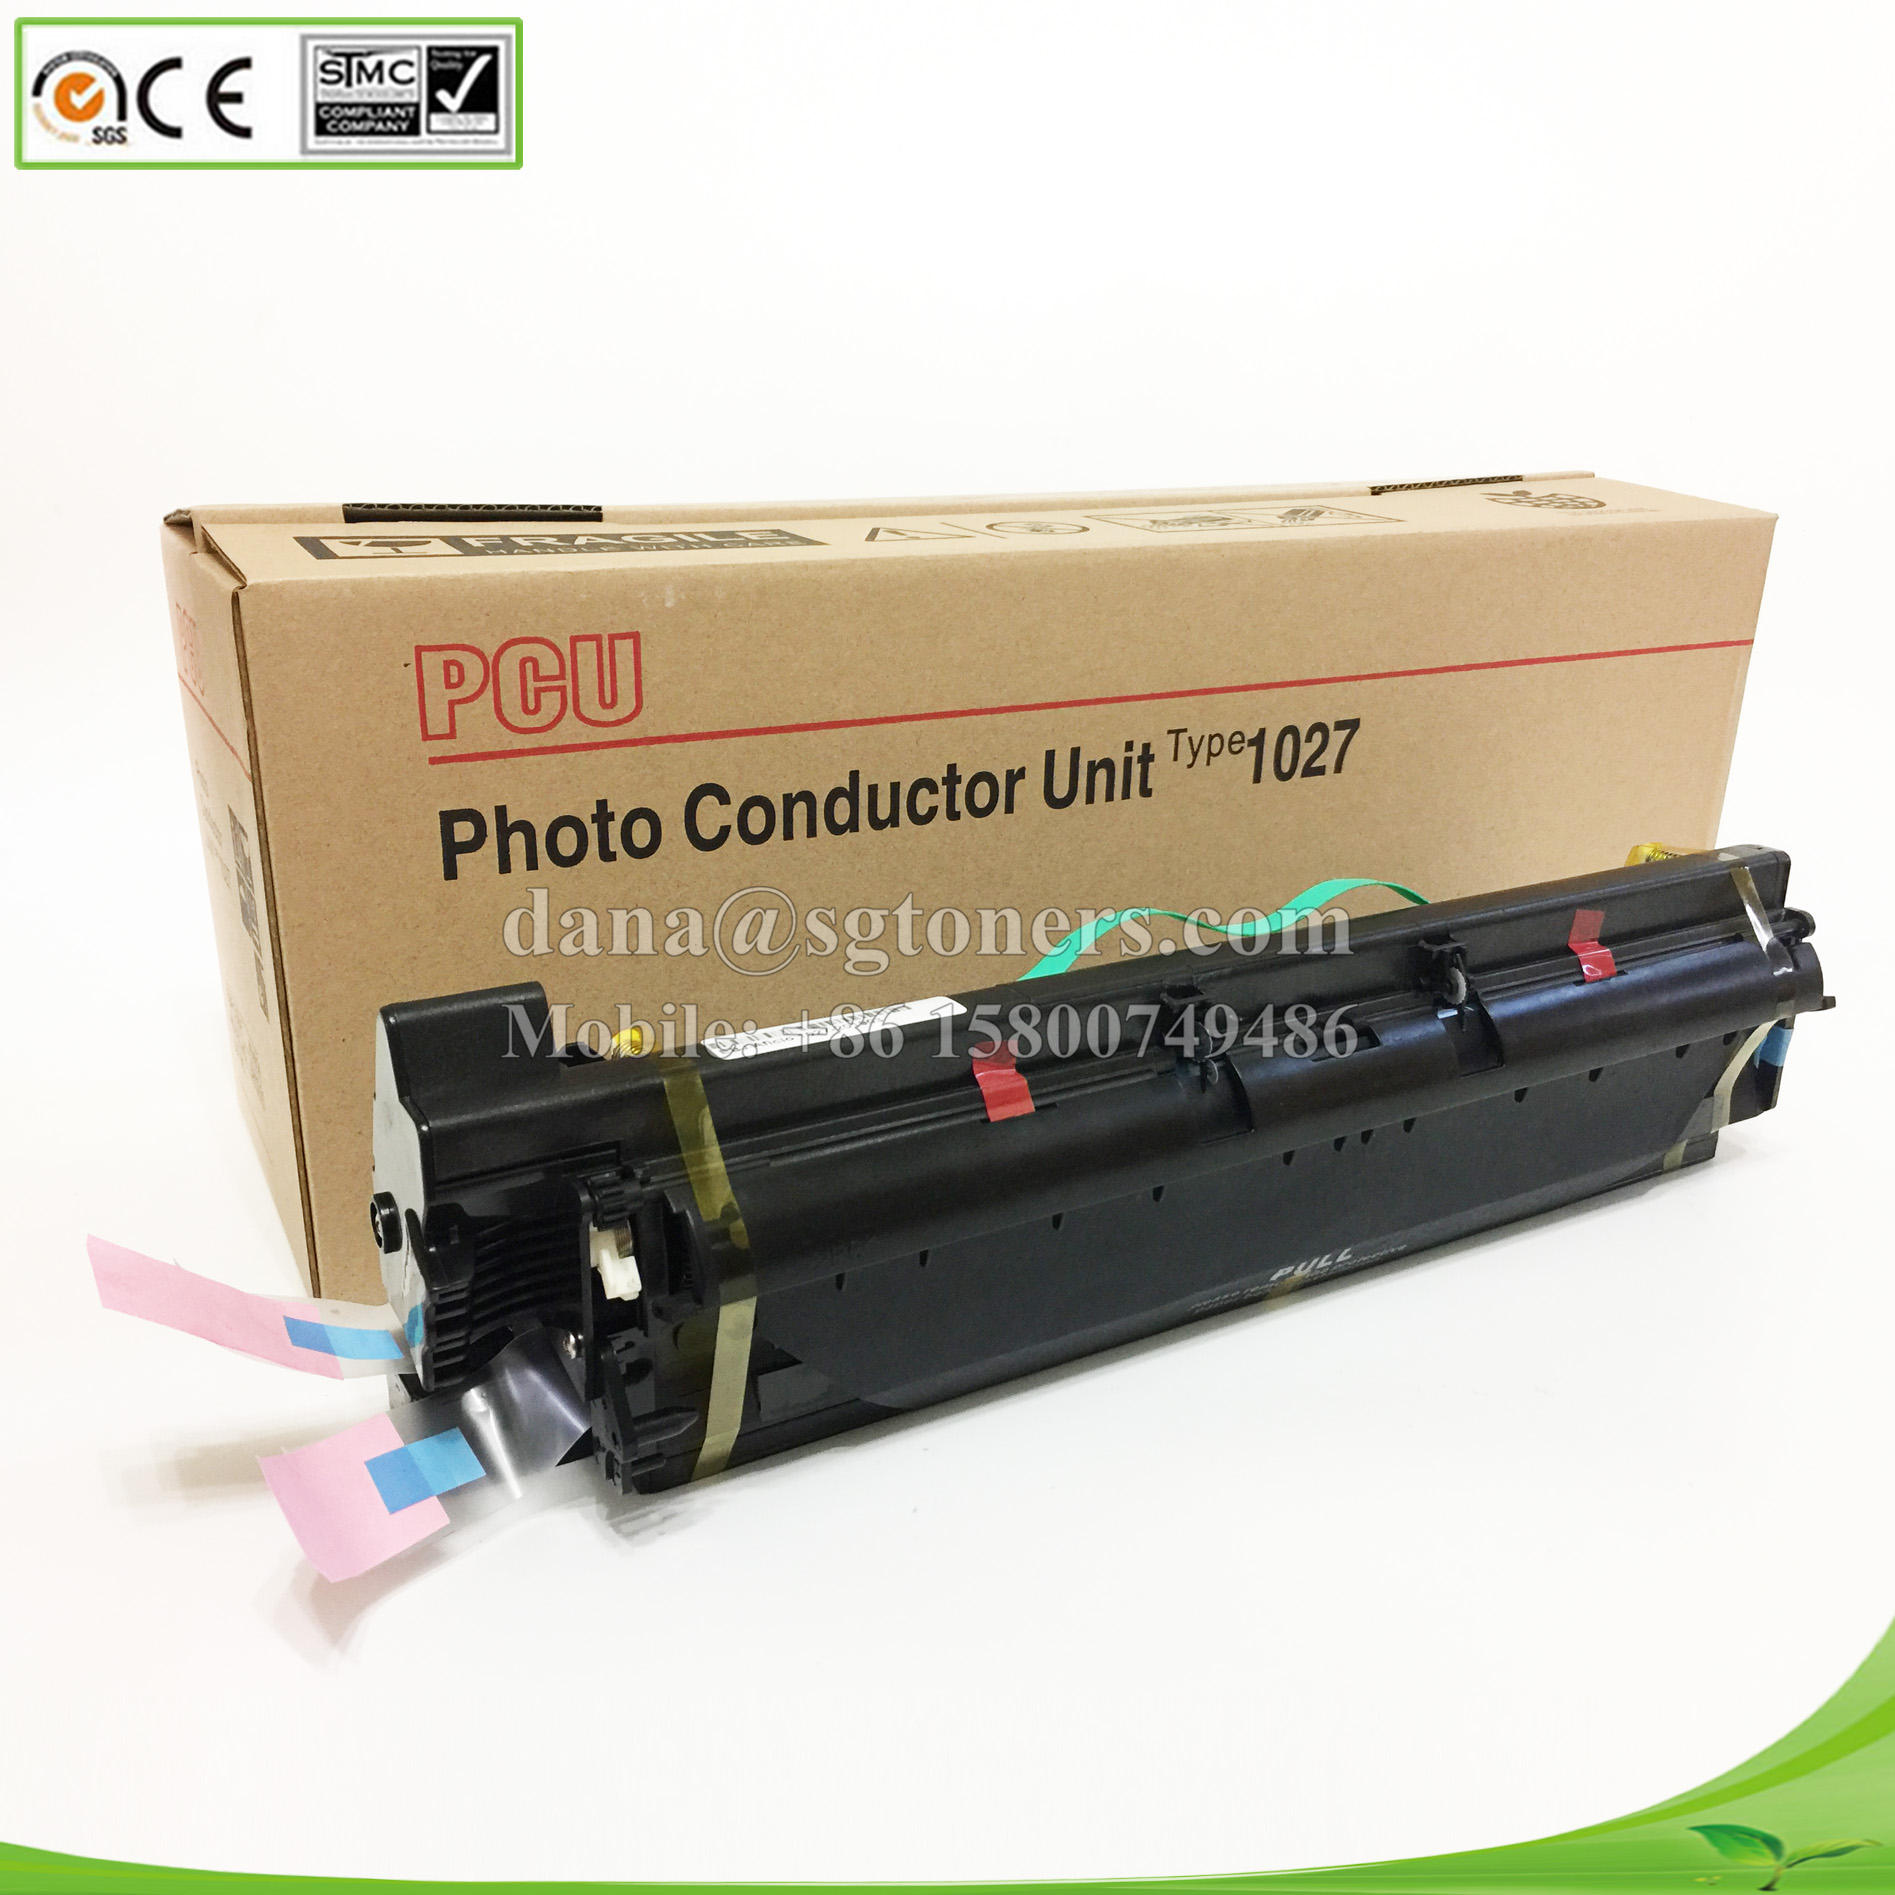 411018 untuk Ricoh Aficio AF 1022 1027 1032 2022 2027 2032 Type 1027 Drum Unit Photo Conductor Unit